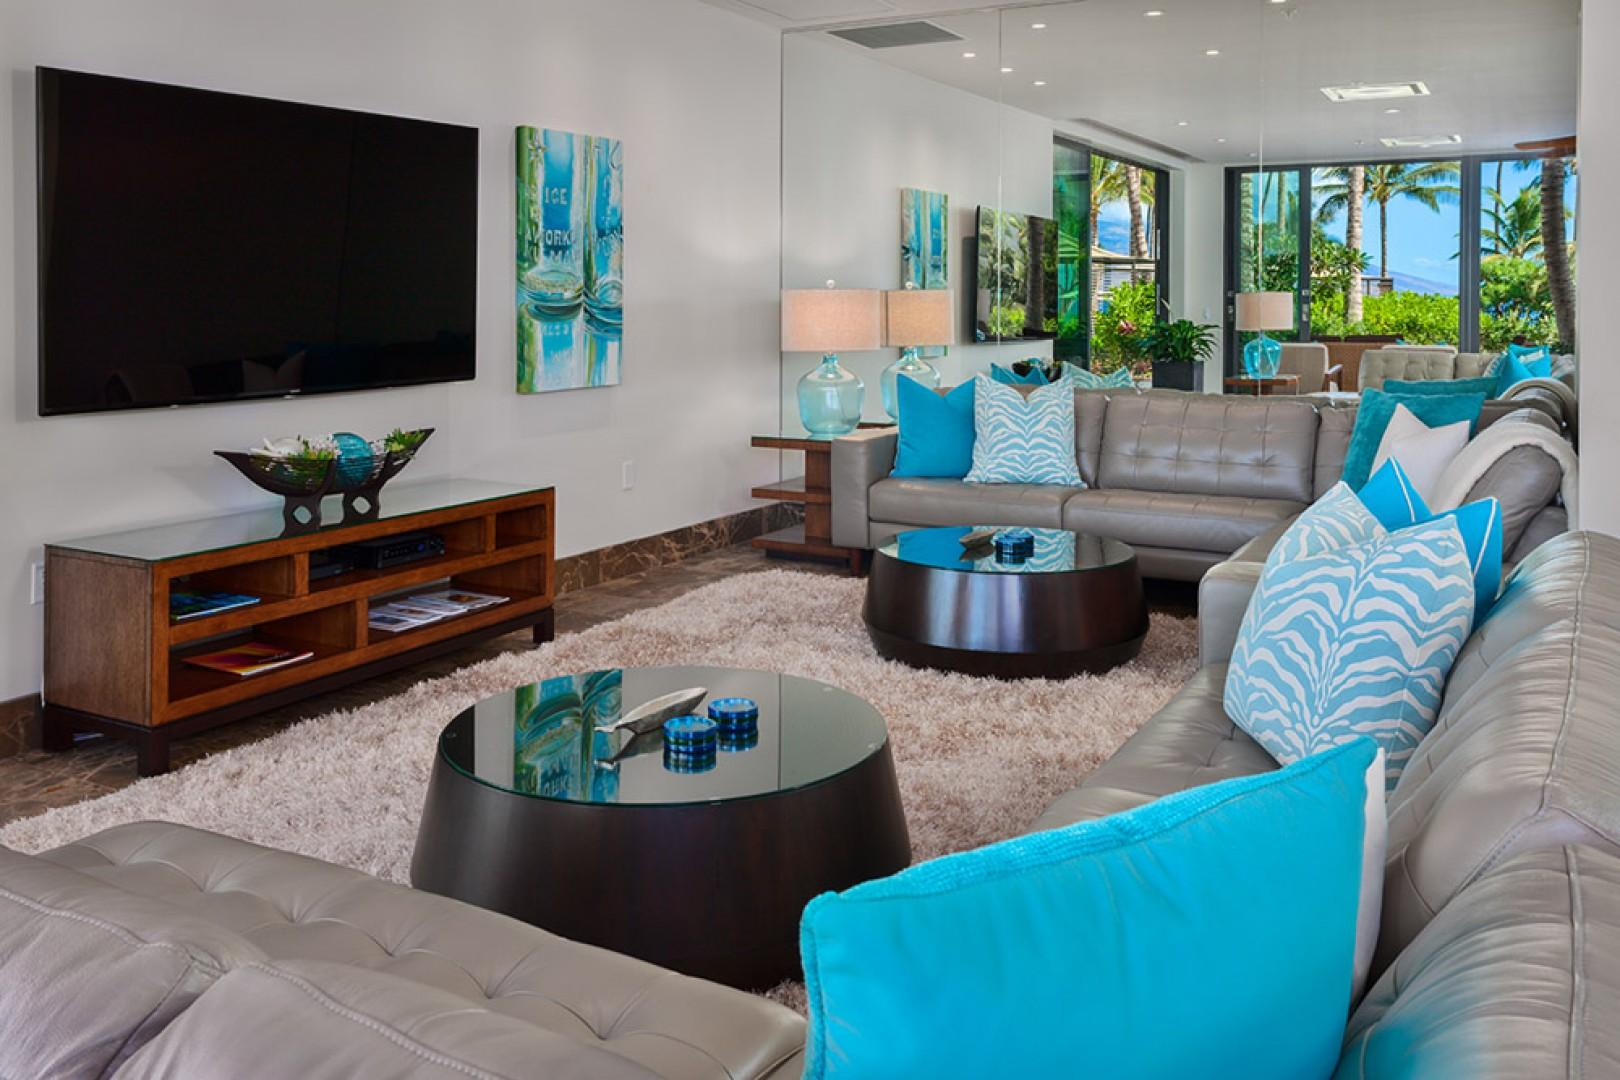 SeaGlass Villa 810 at Andaz Maui Wailea Resort - Spacious Dining and Living Space with Leather Sofas, Large Screen TV and Surround Sound System